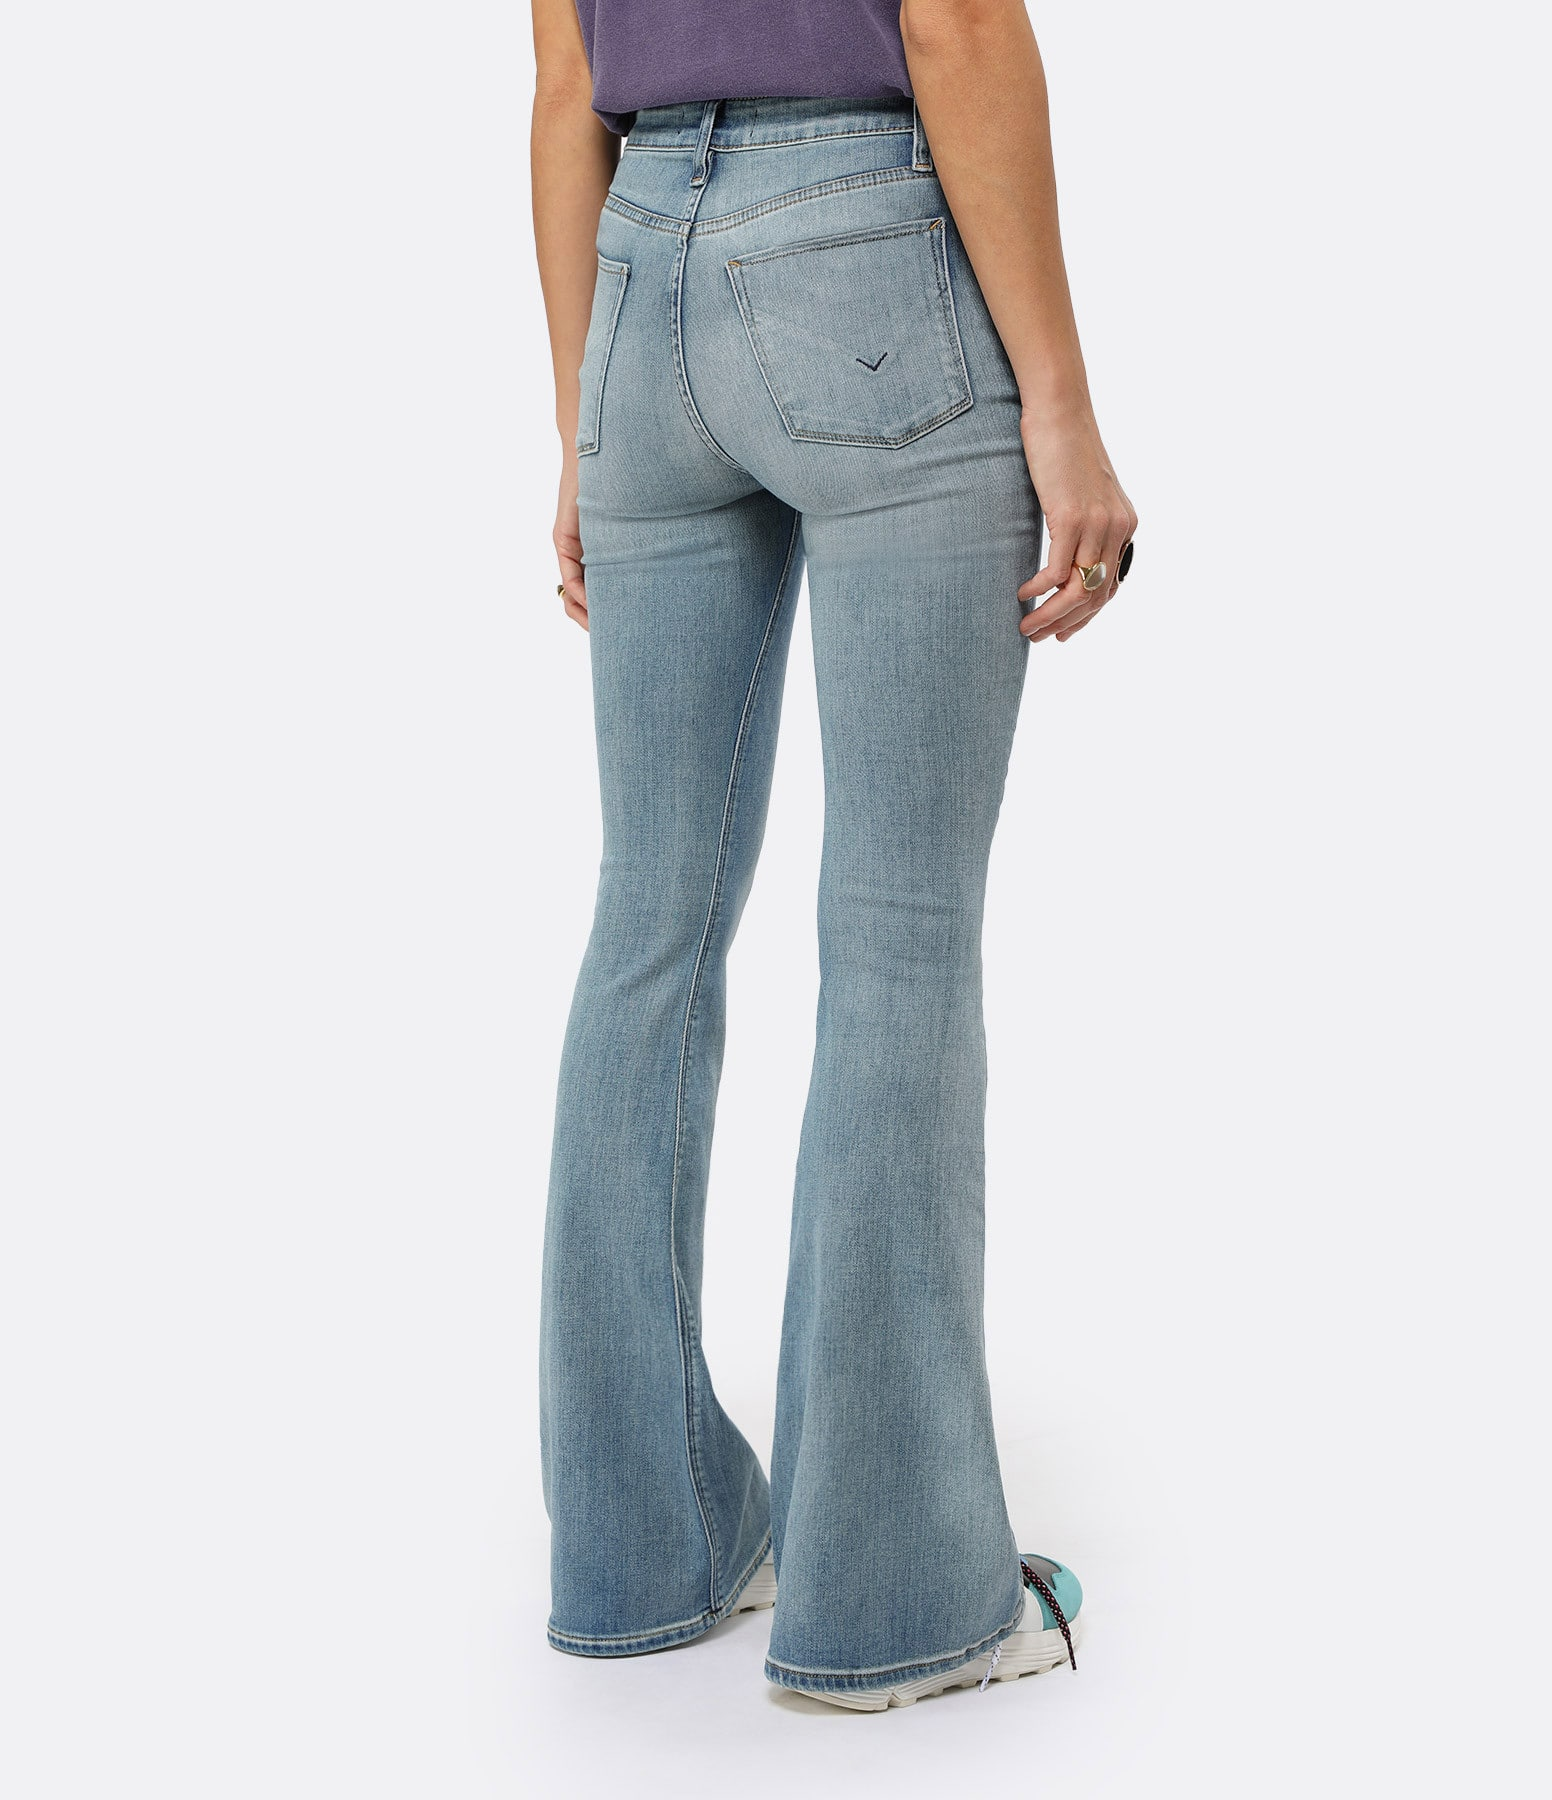 HUDSON JEANS - Jean Holly High Rise Flare Word Play